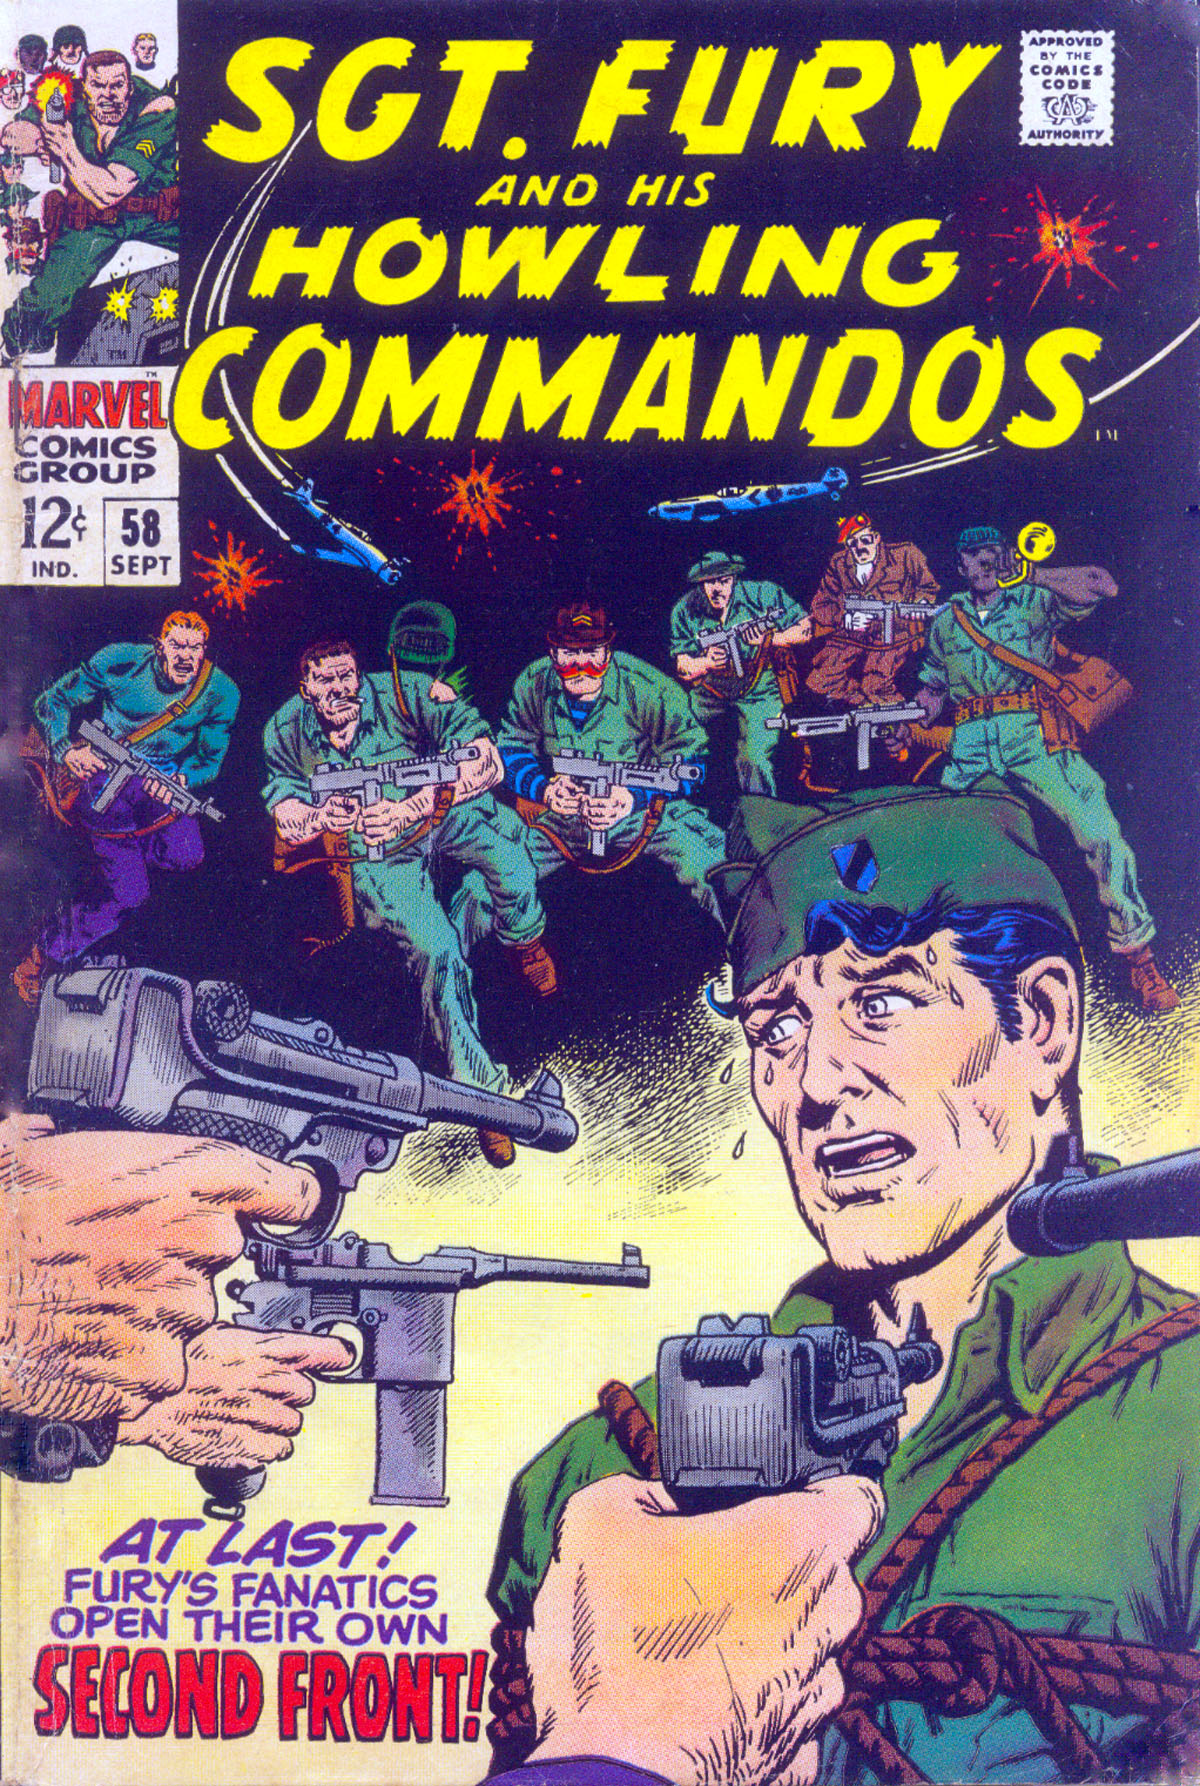 Read online Sgt. Fury comic -  Issue #58 - 1